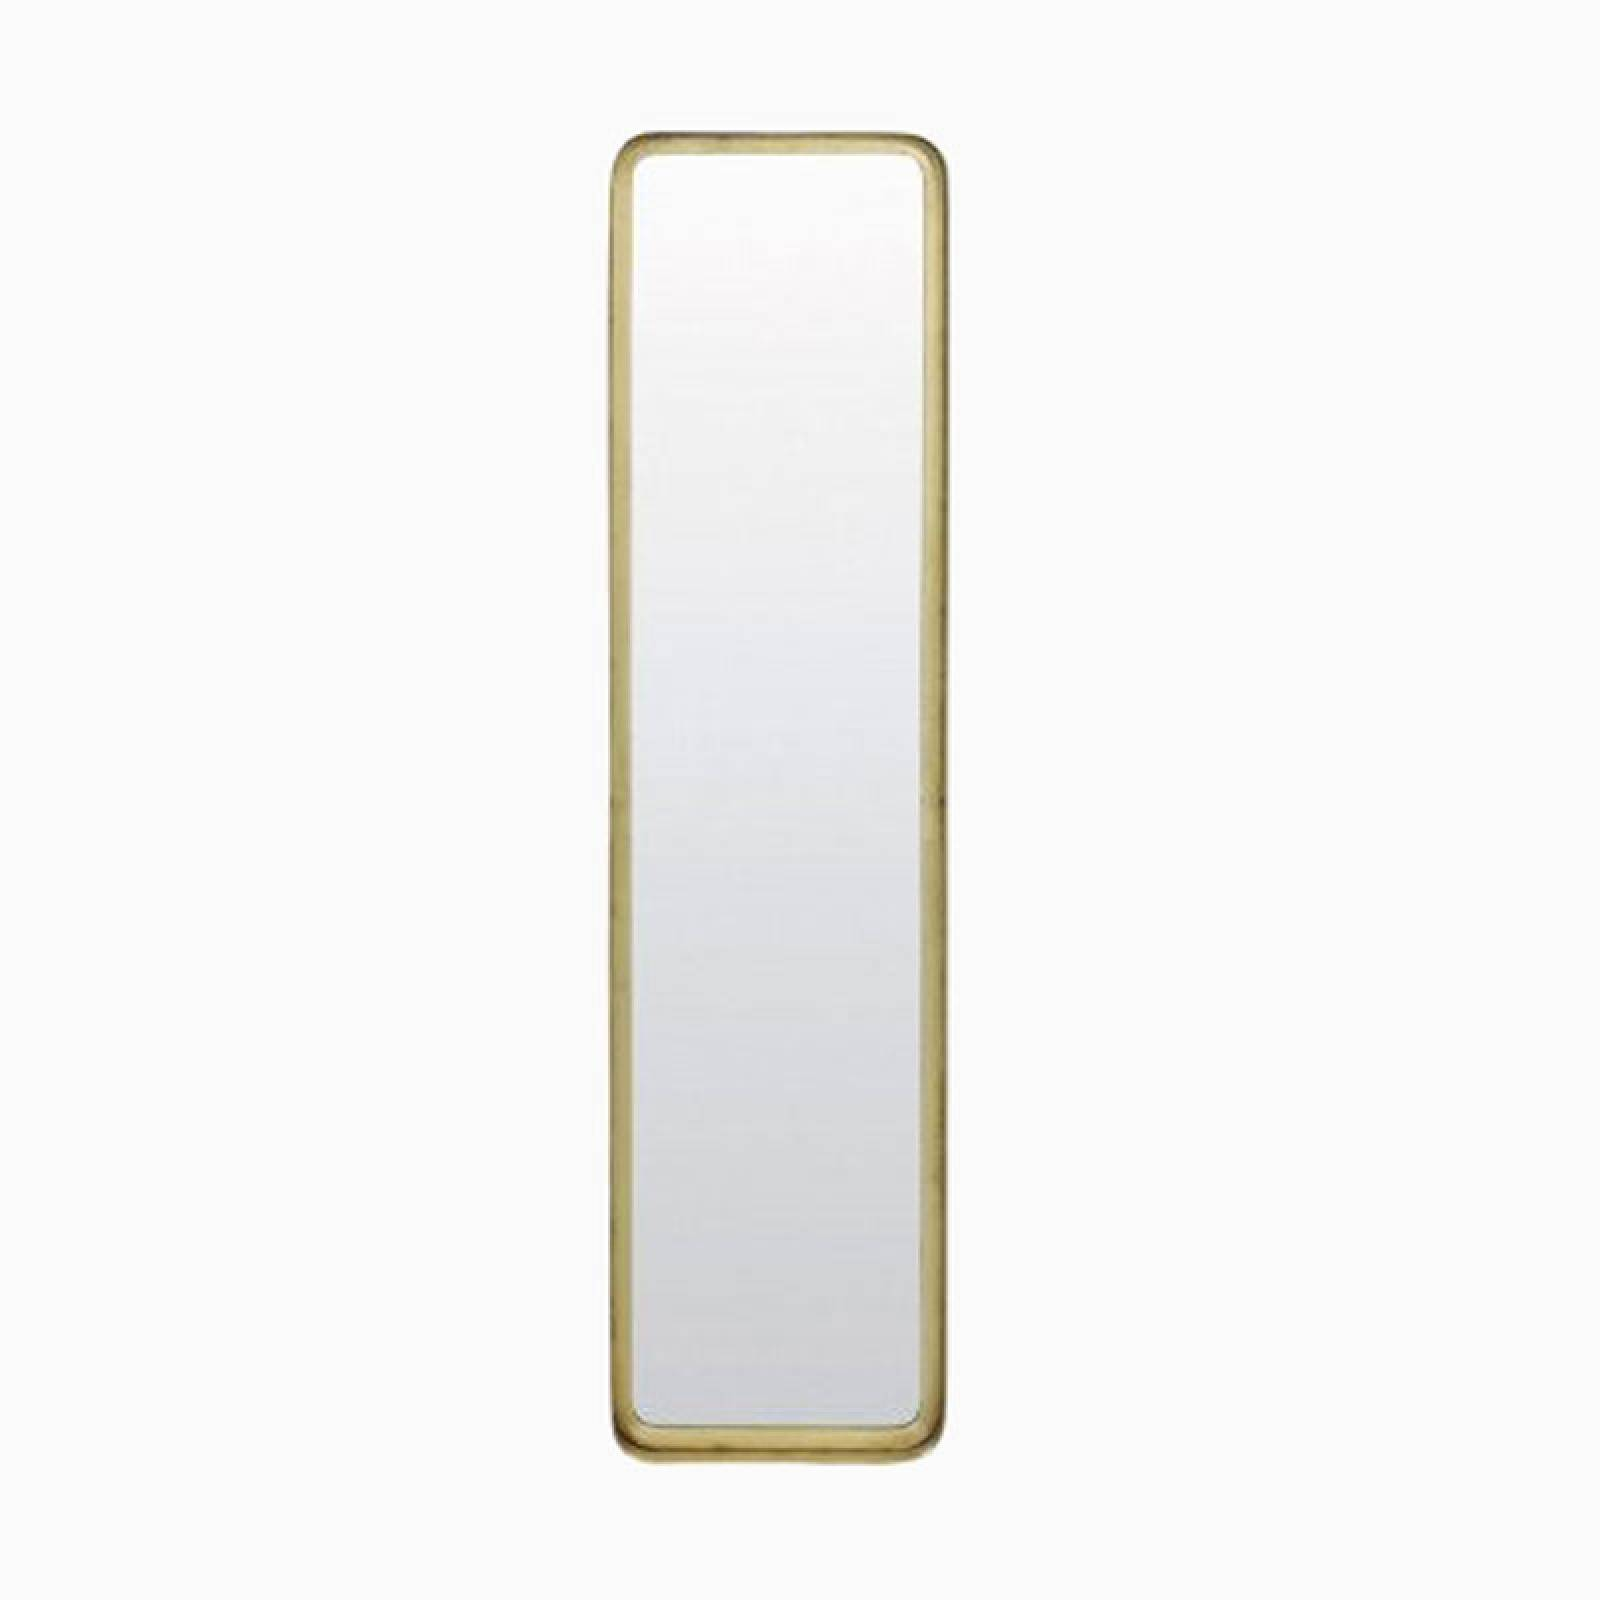 Gold Rectangular Annis Mirror 20x4.5x80cm